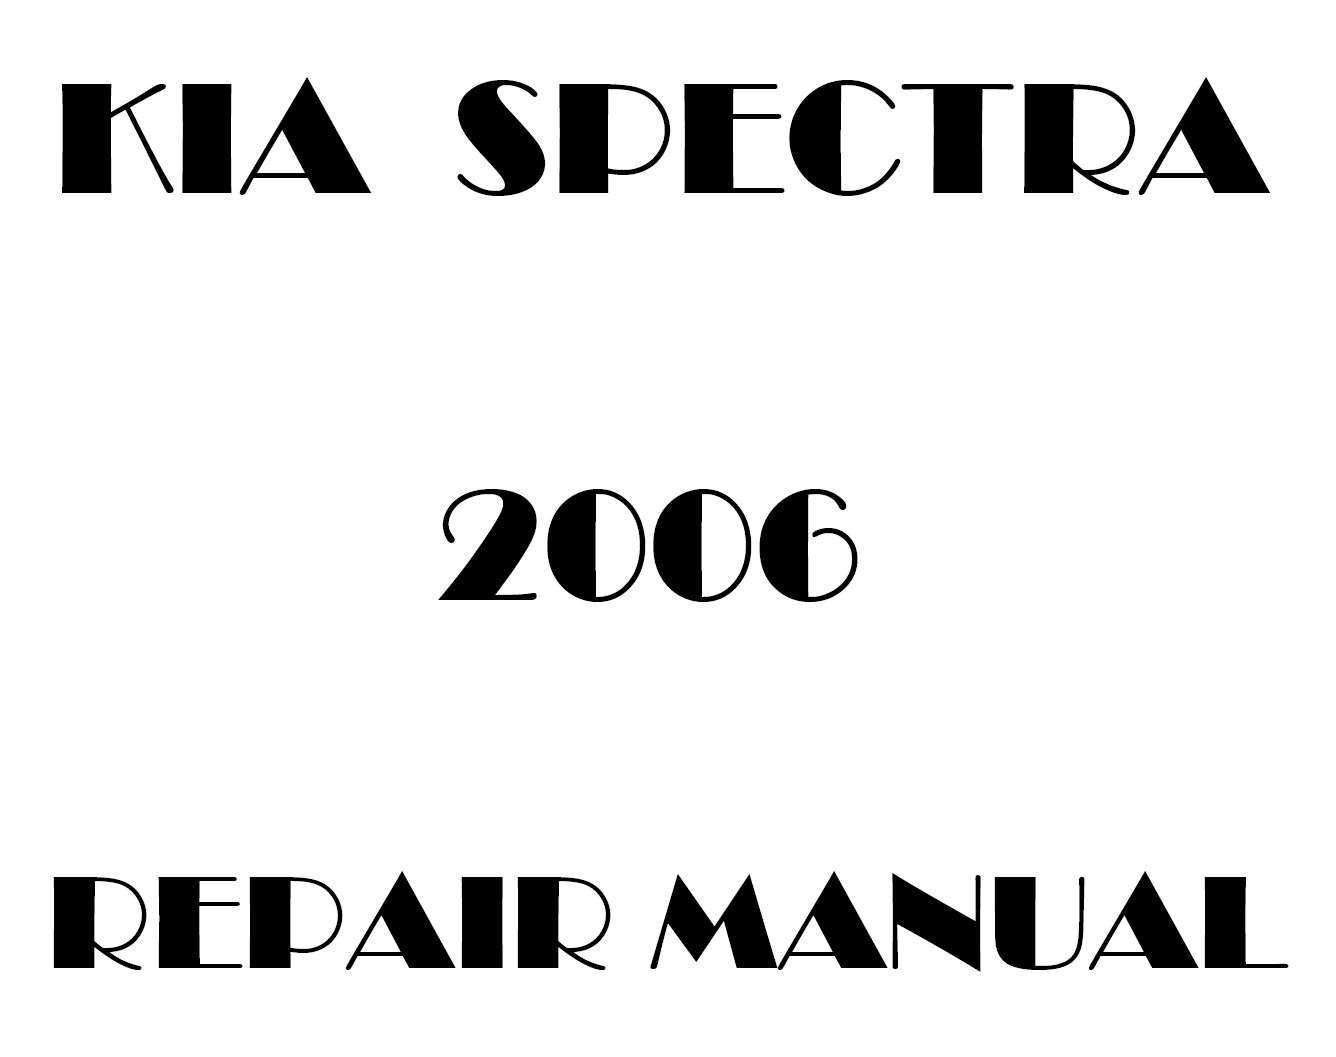 2006 Kia Spectra repair manual